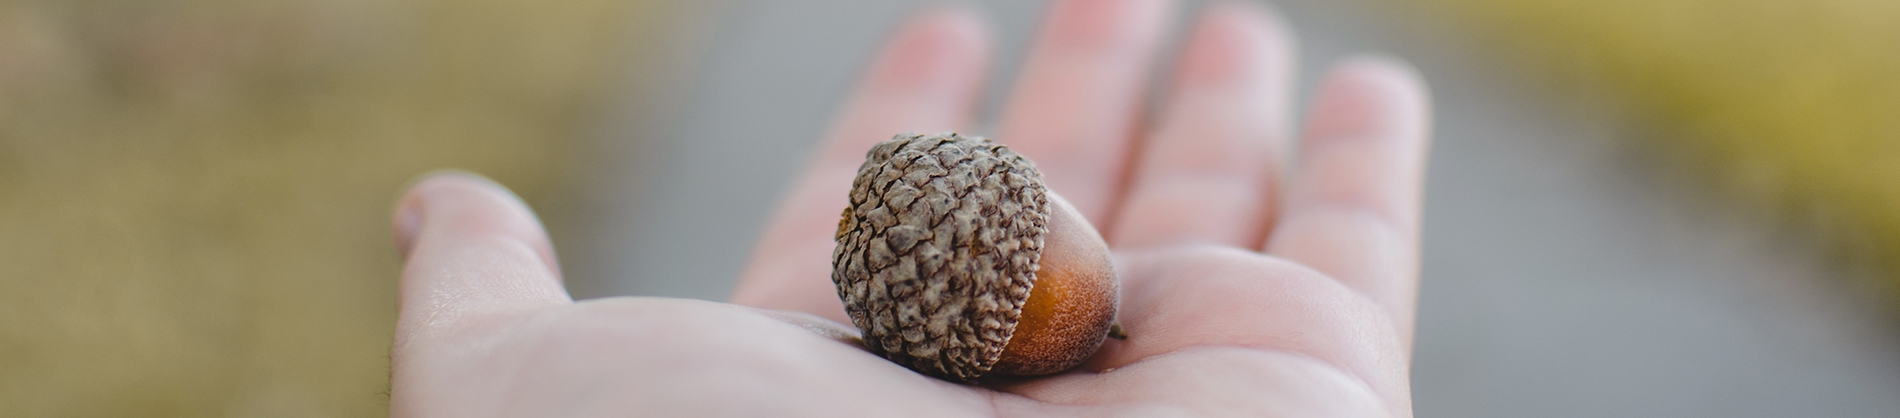 A person holding an acorn